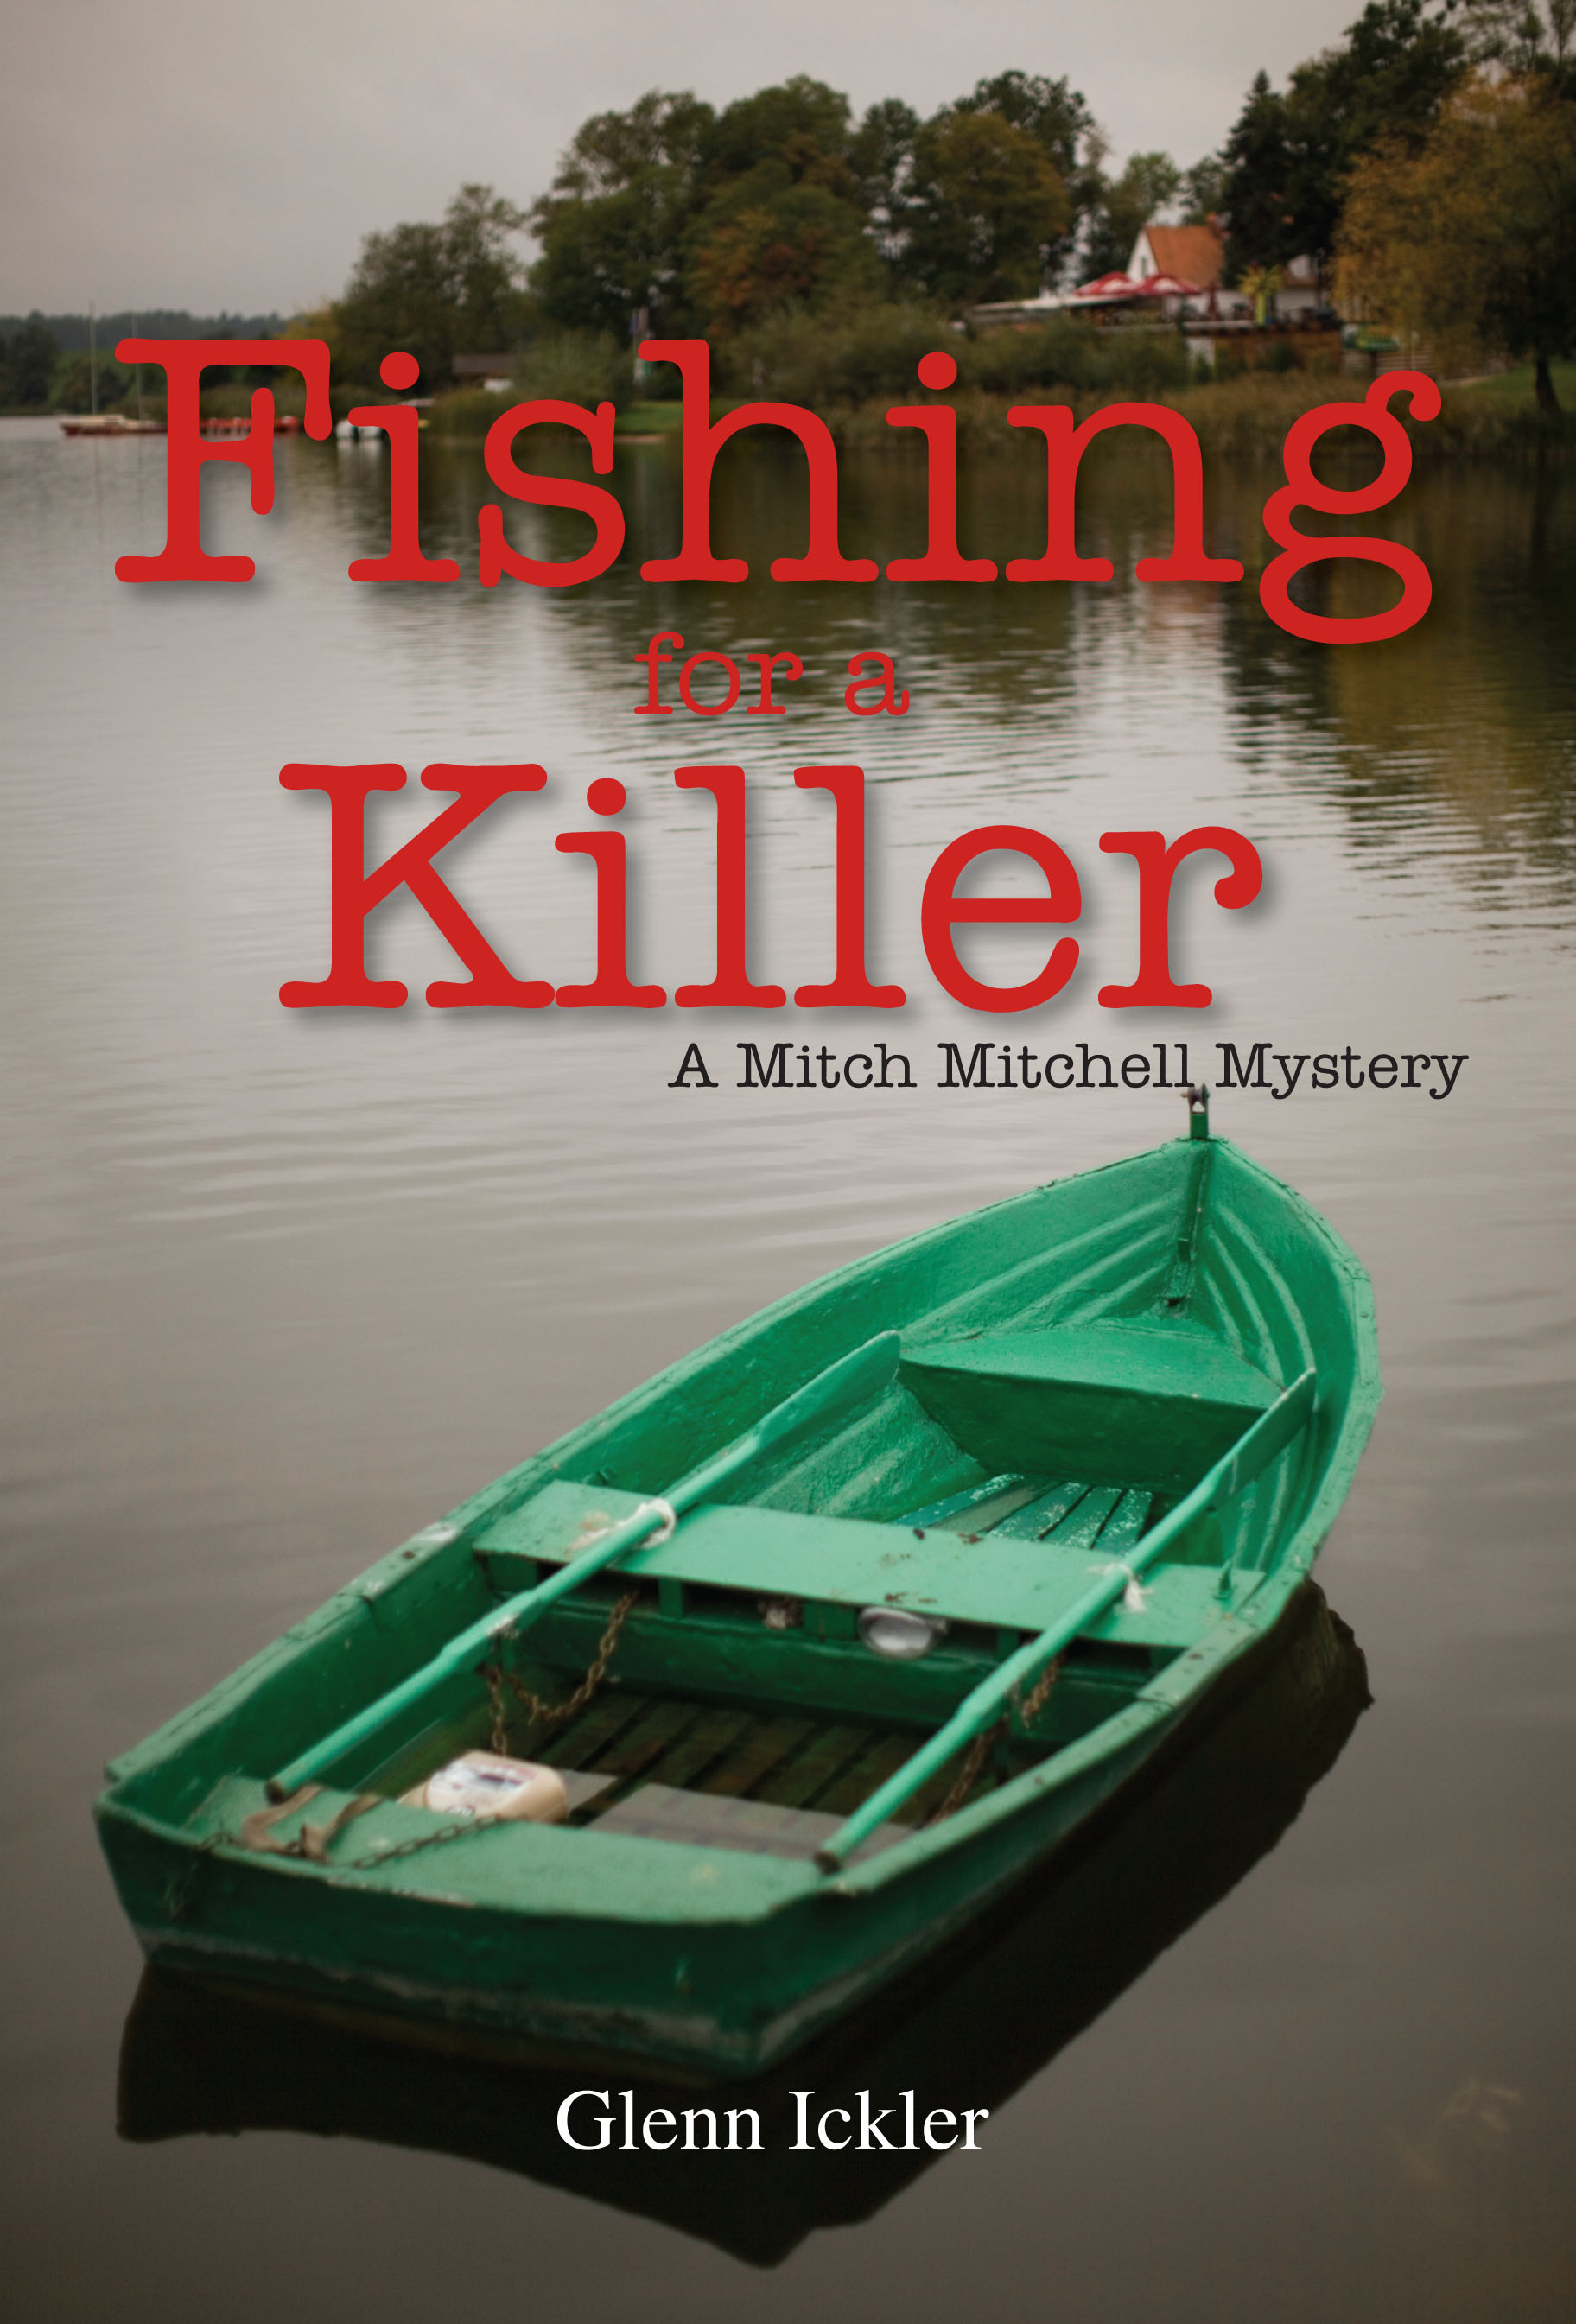 Fishing for a Killer